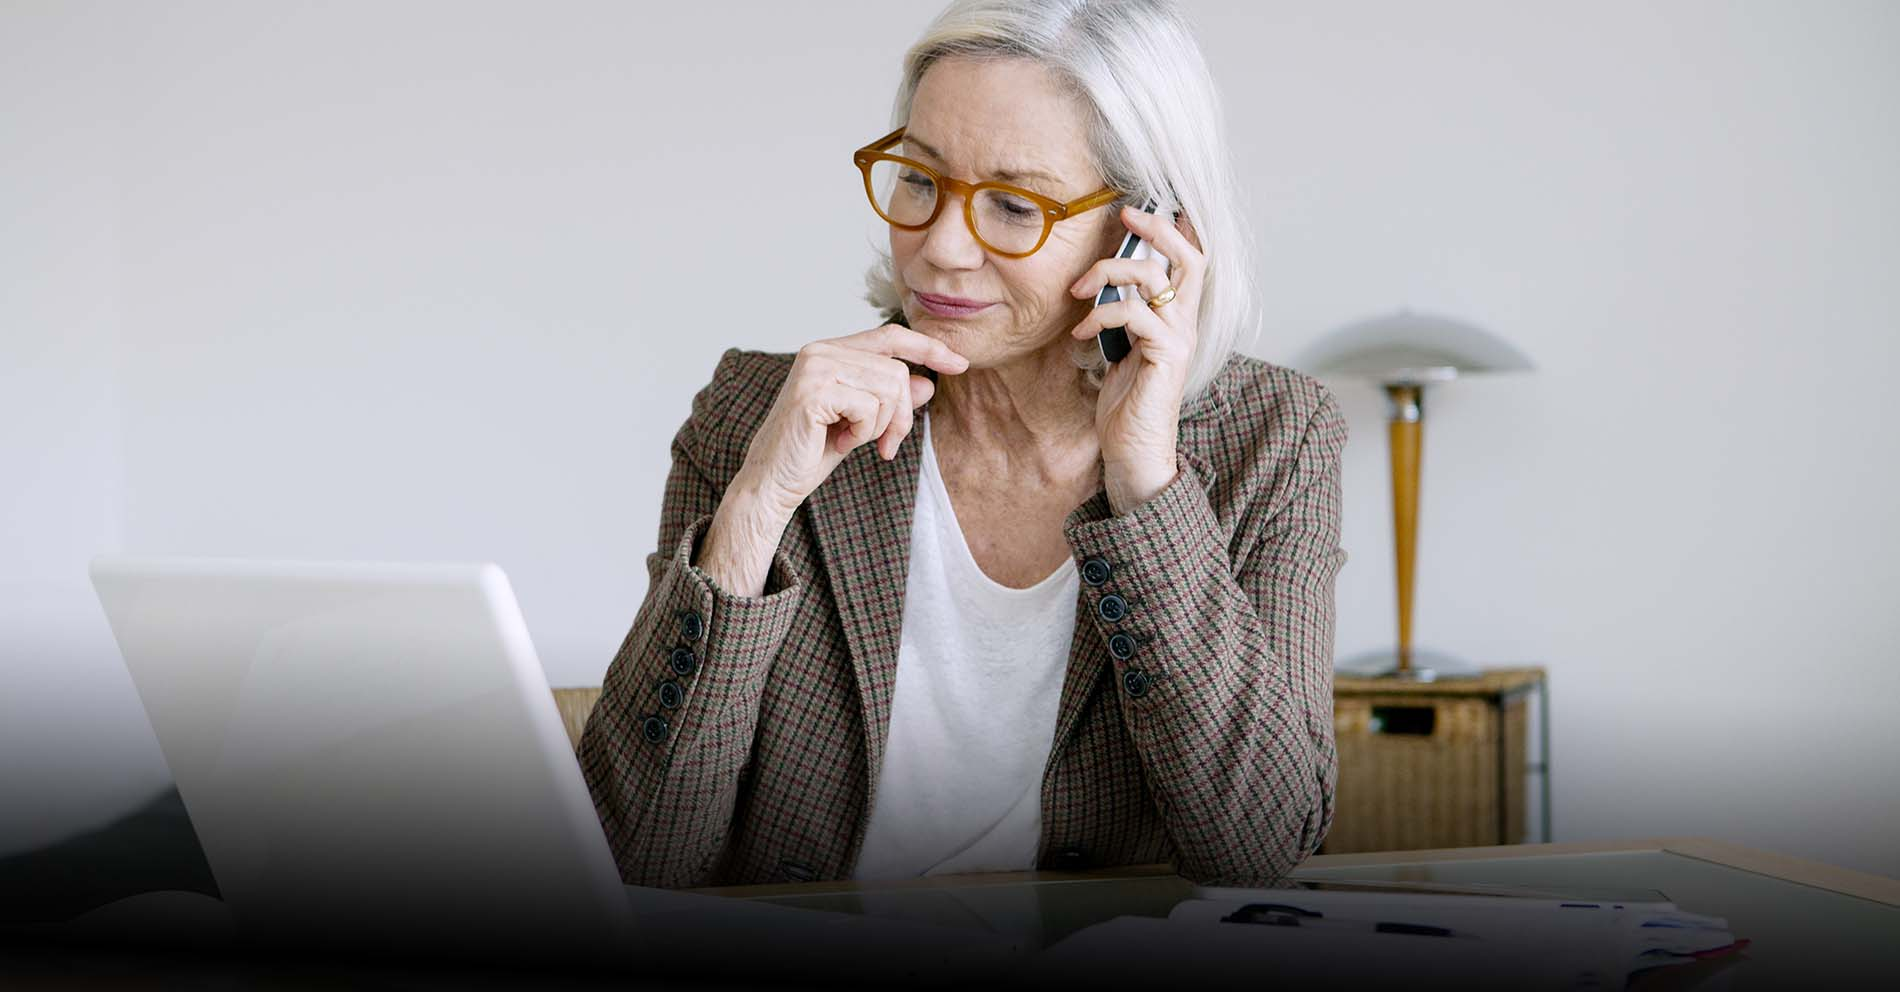 5 Important Reasons to Work after Retirement